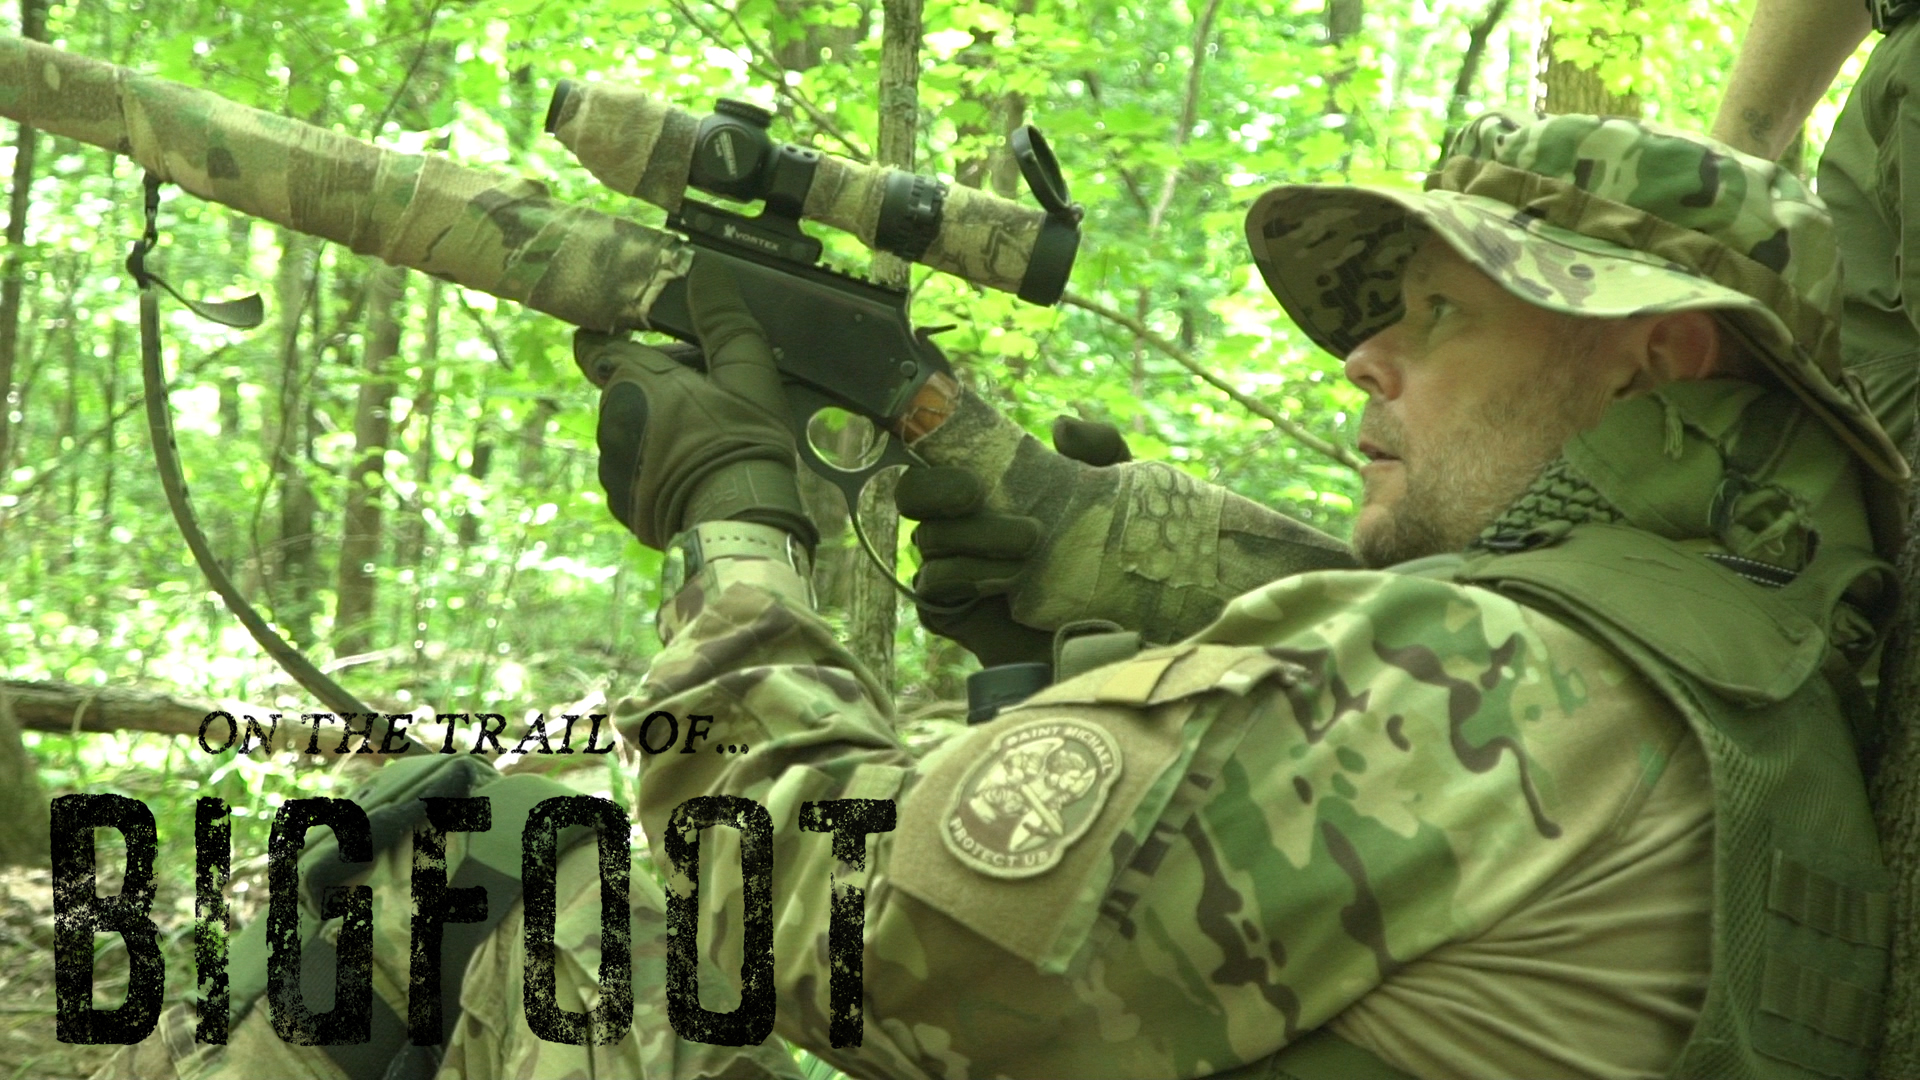 On the Trail of... Bigfoot (2019)